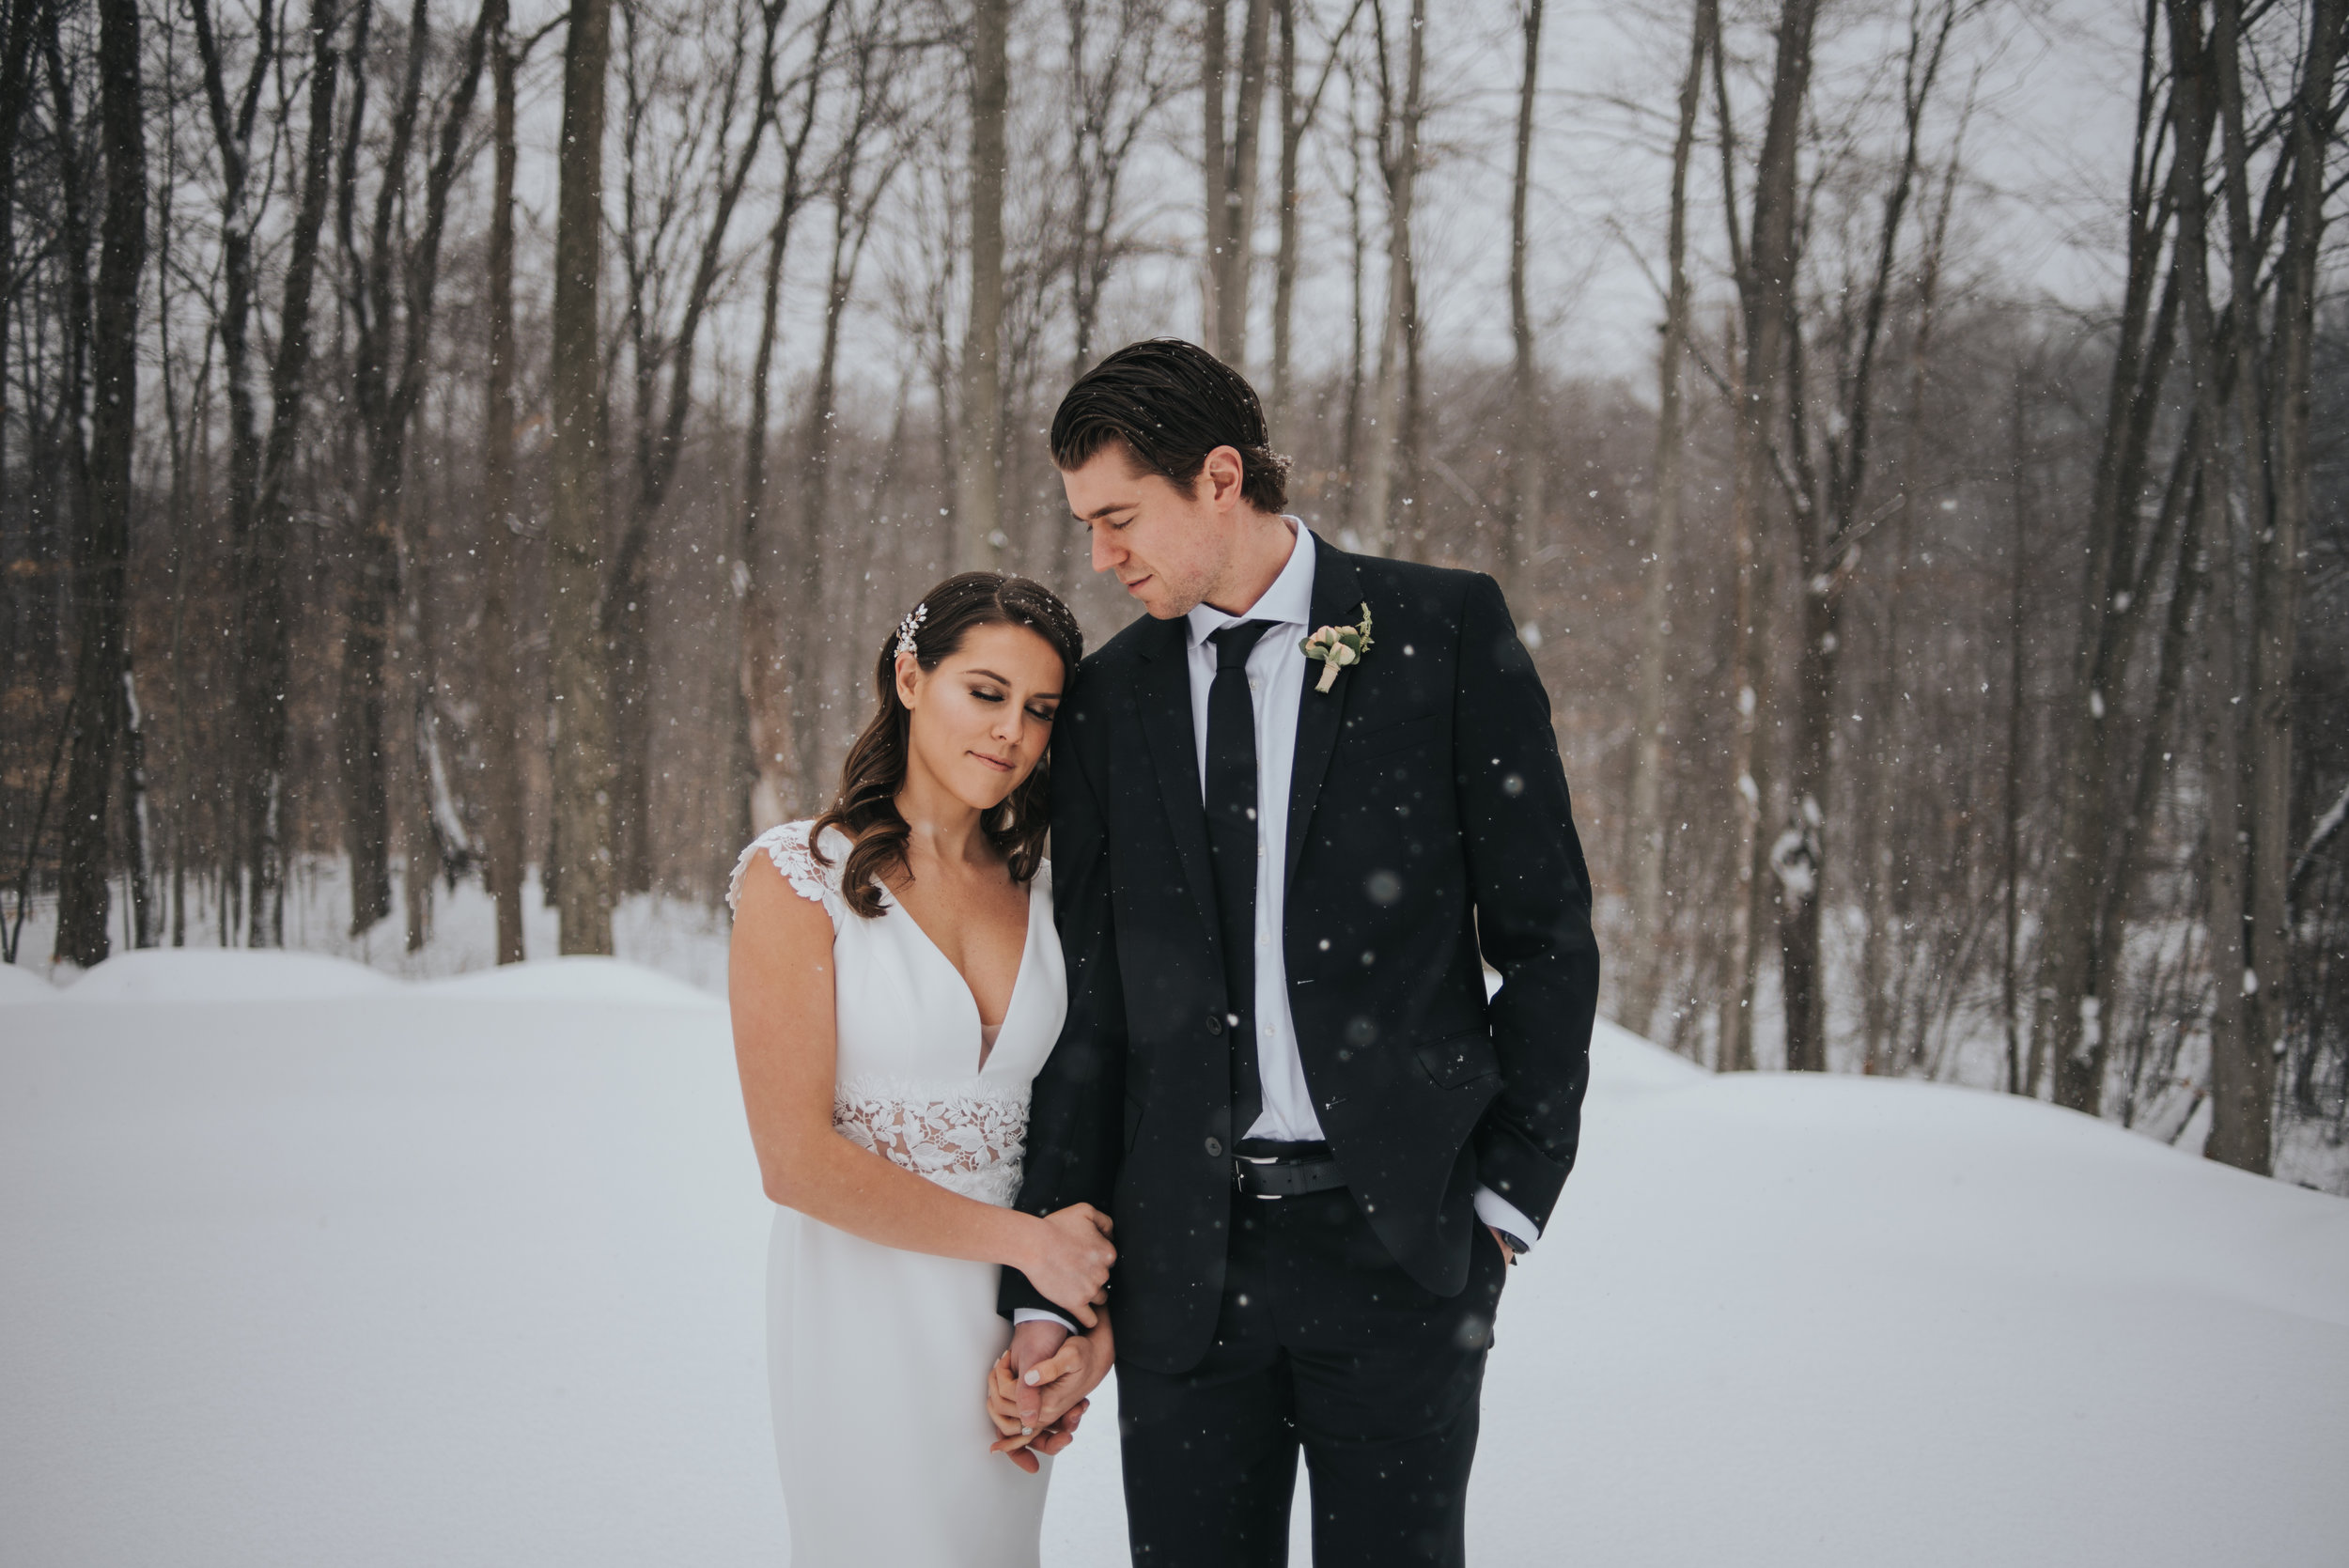 Whimsically Wed feature - Coming Soon!